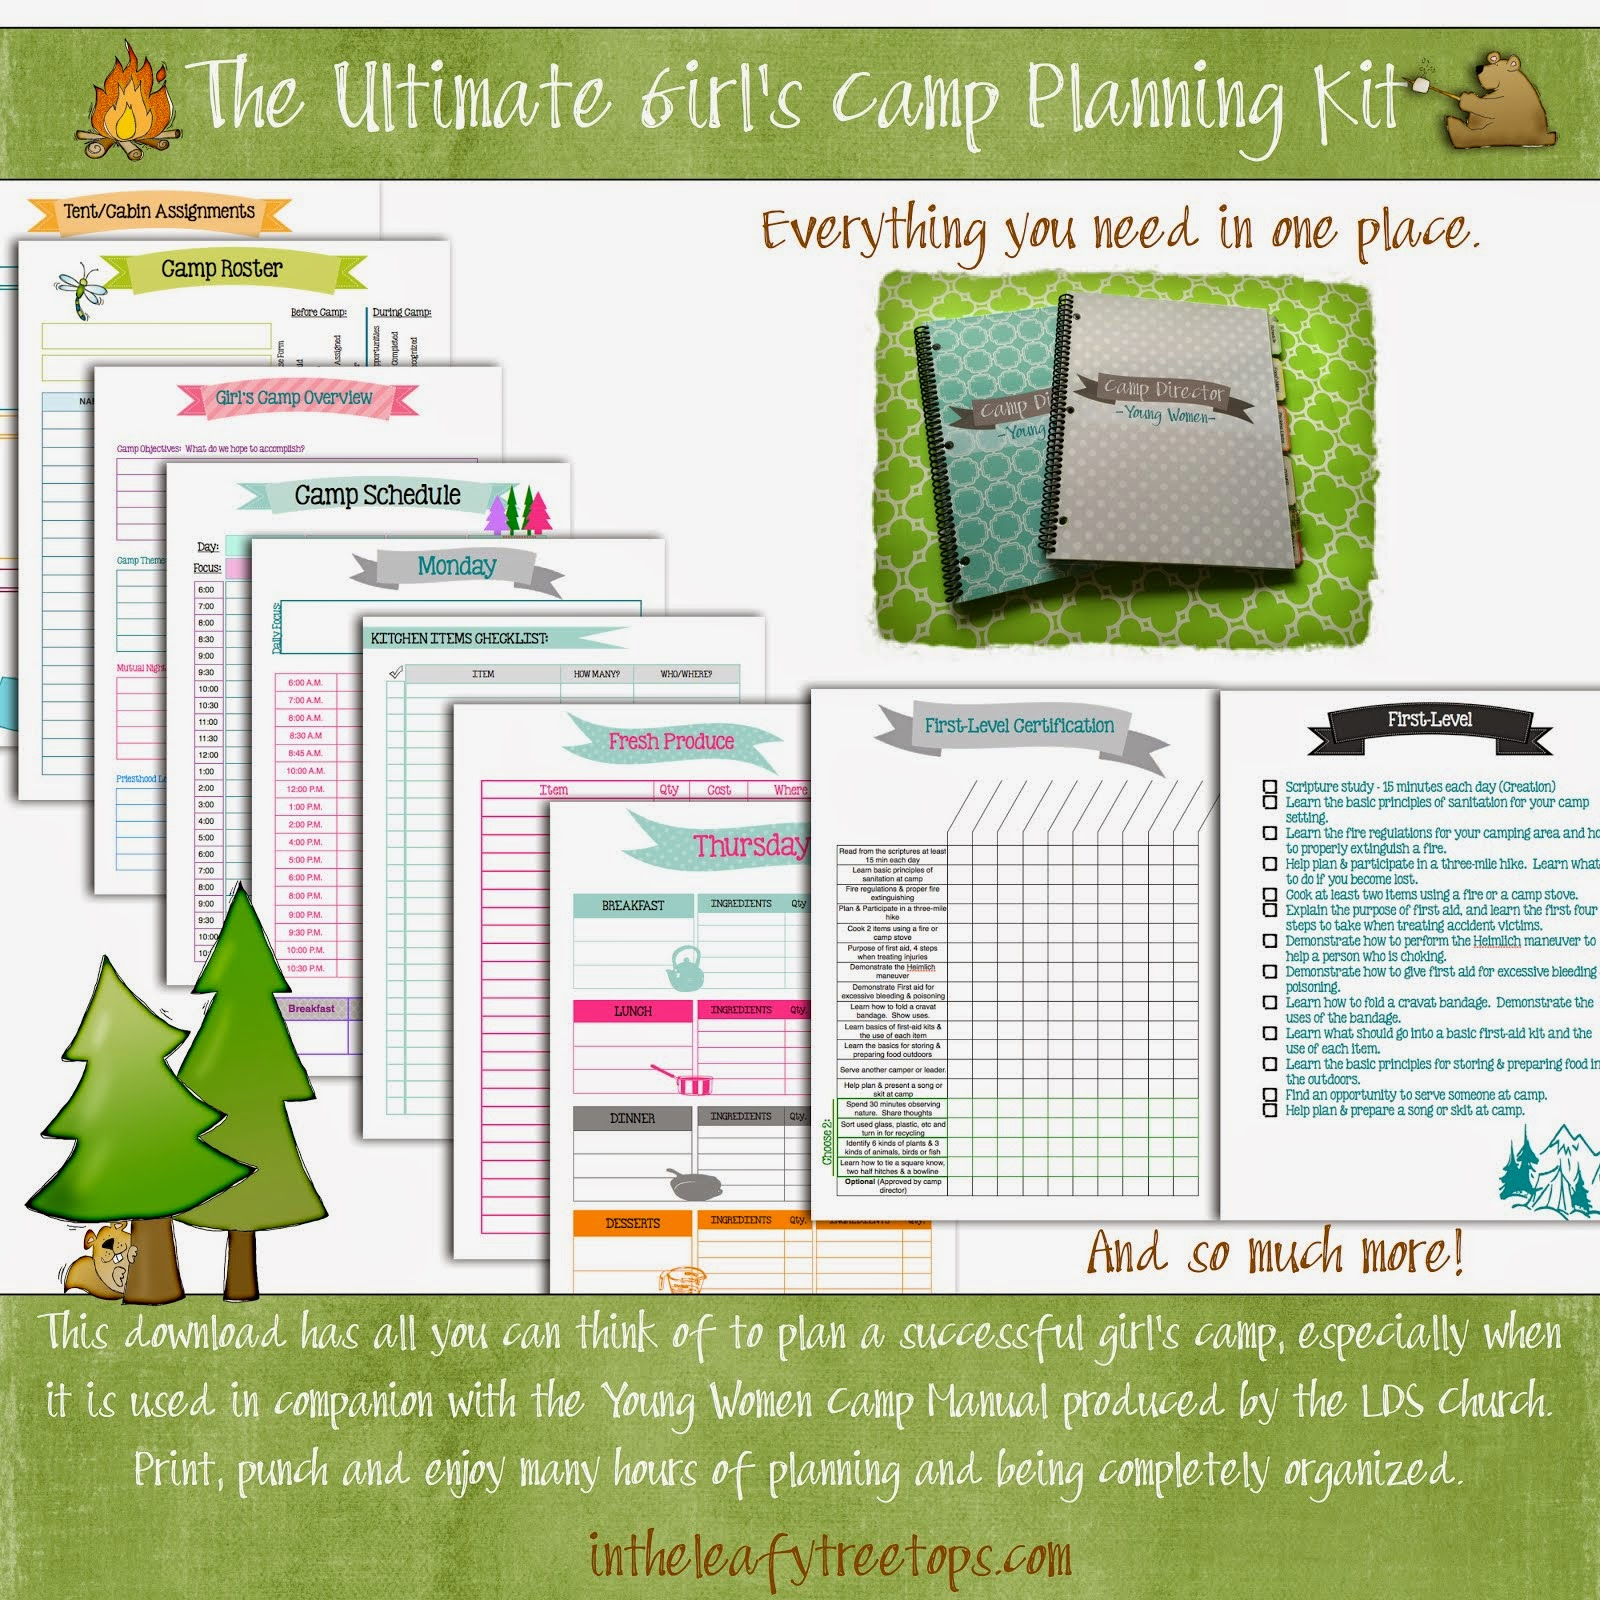 Girl's Camp Planning Kit